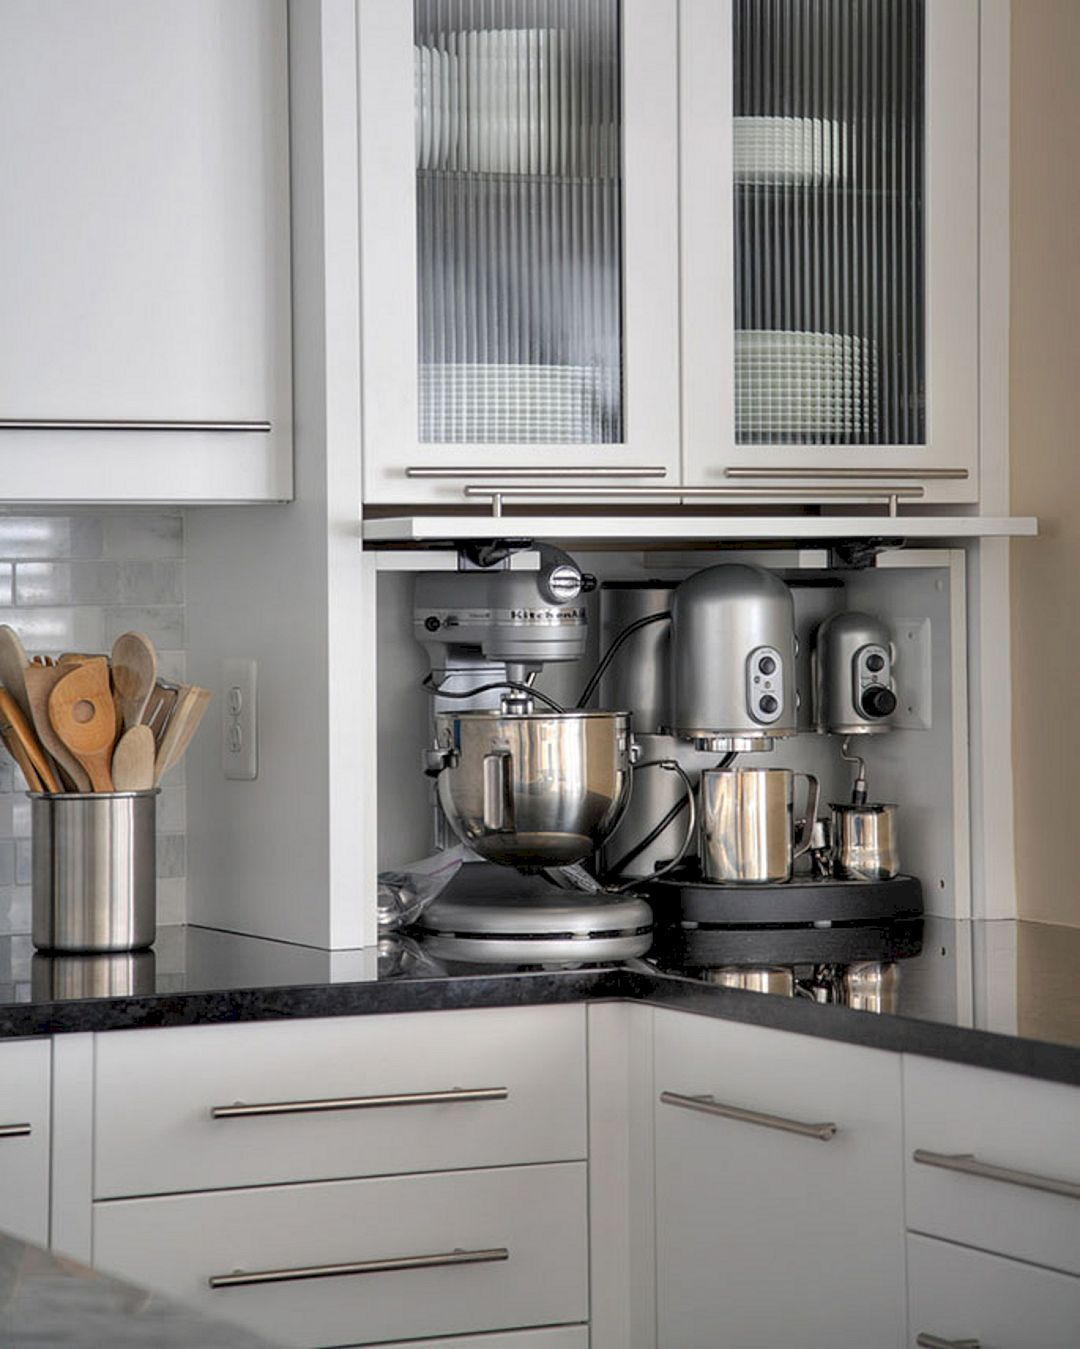 No Kitchen Cabinet Ideas: Stunning Diy Kitchen Storage Solutions For Small Space And